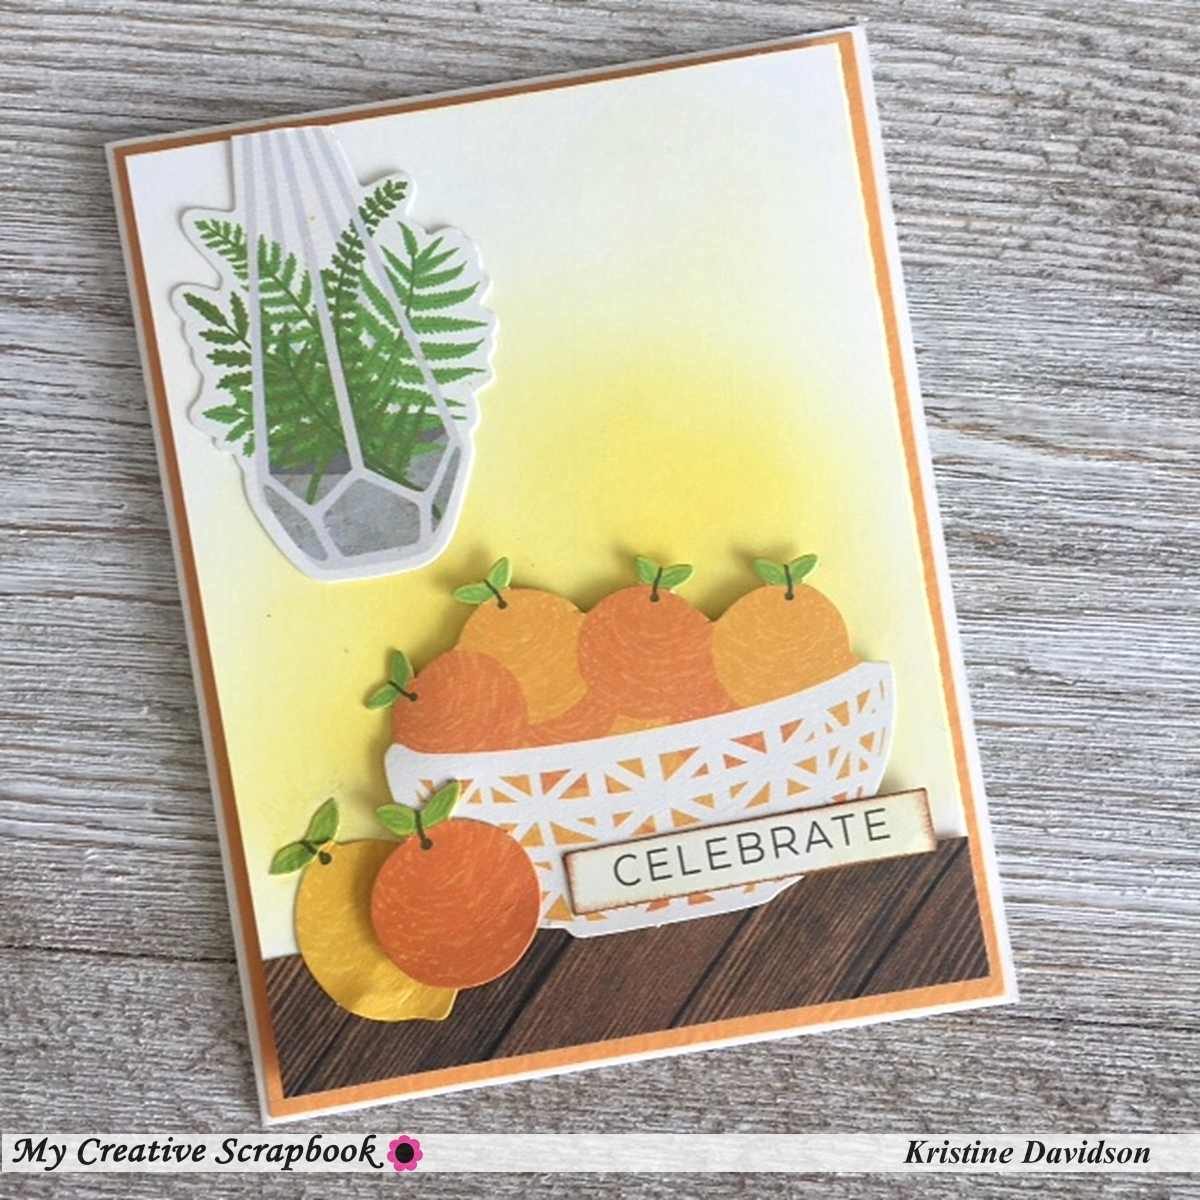 MCS-Kristine Davidson - Main Kit - Card6